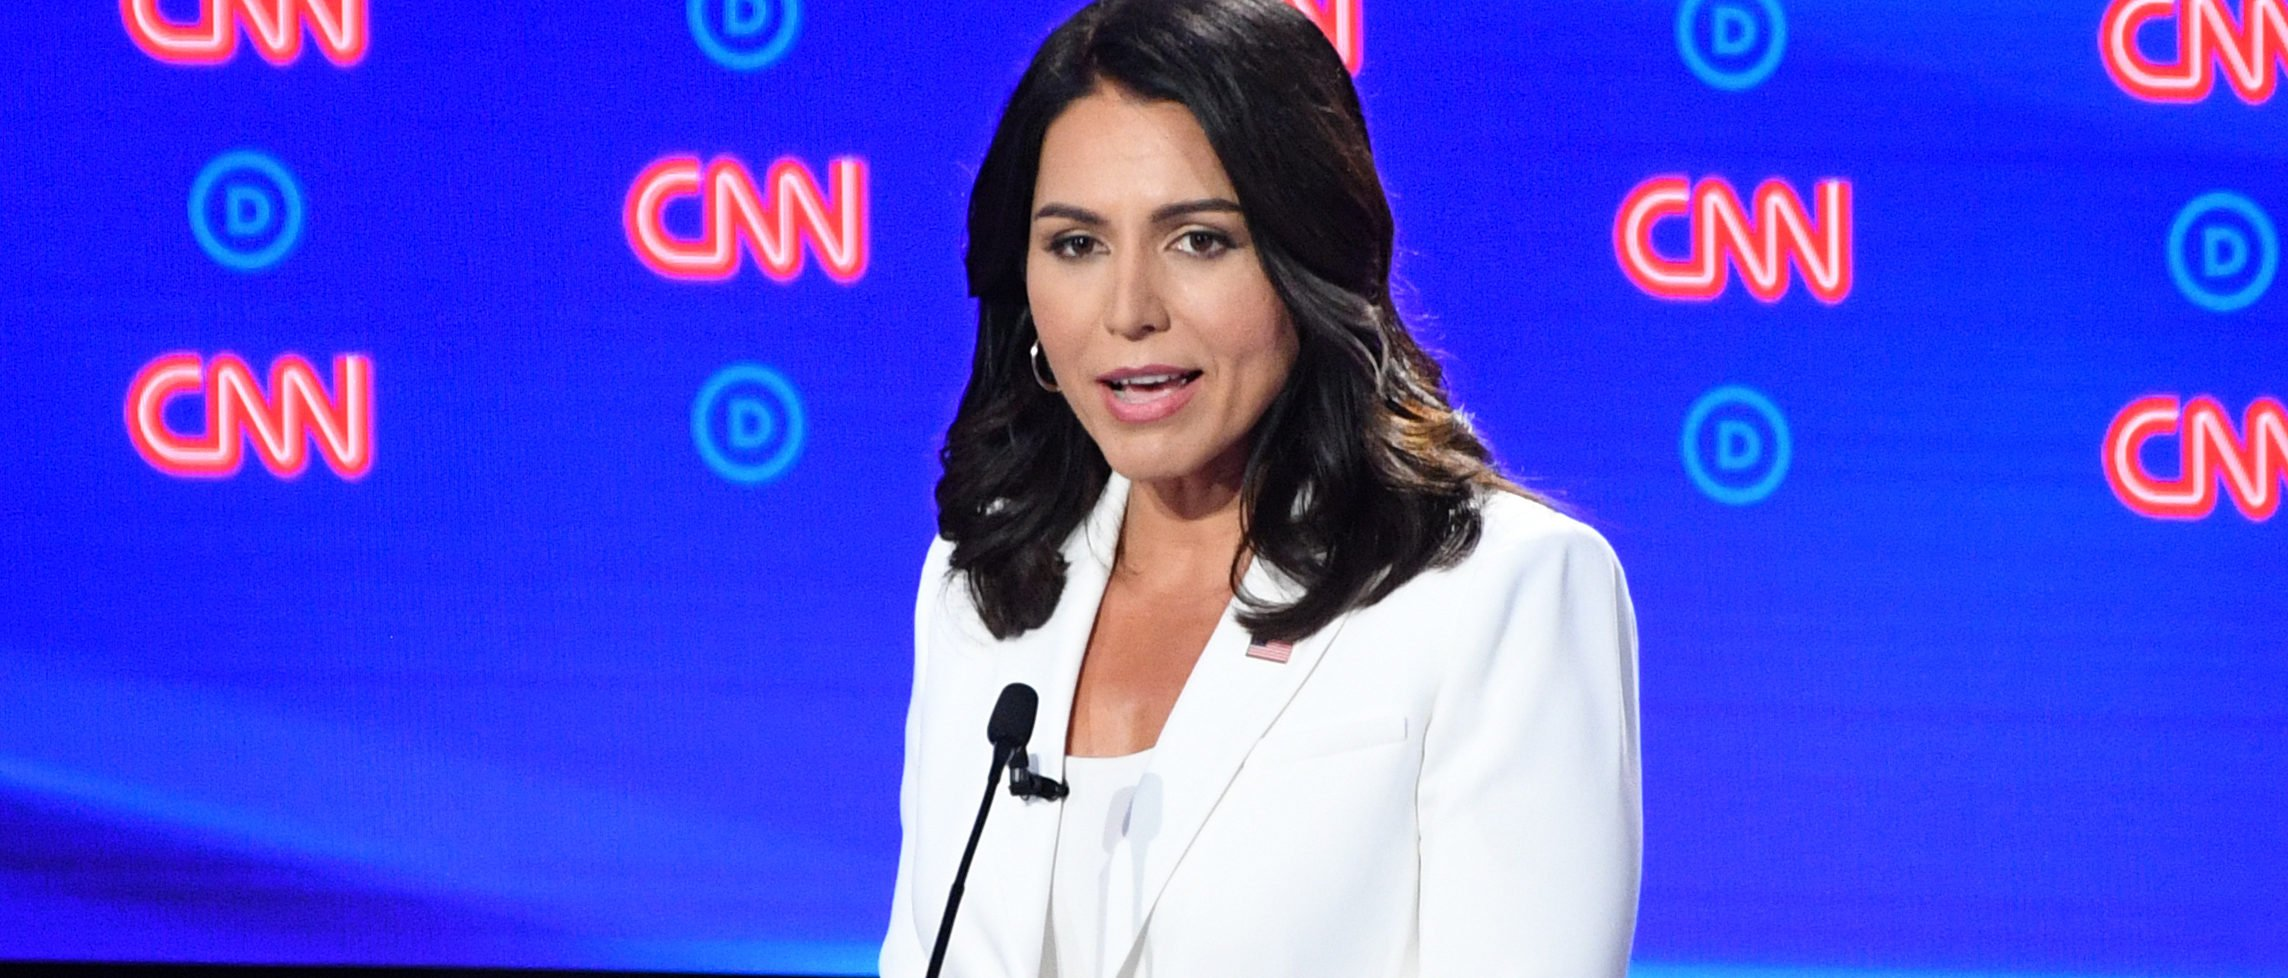 Democratic presidential hopeful US Representative for Hawaii's 2nd congressional district Tulsi Gabbard speaks during the second round of the second Democratic primary debate of the 2020 presidential campaign season hosted by CNN at the Fox Theatre in Detroit, Michigan on July 31, 2019. (Photo by Jim WATSON / AFP) (Photo credit should read JIM WATSON/AFP/Getty Images)